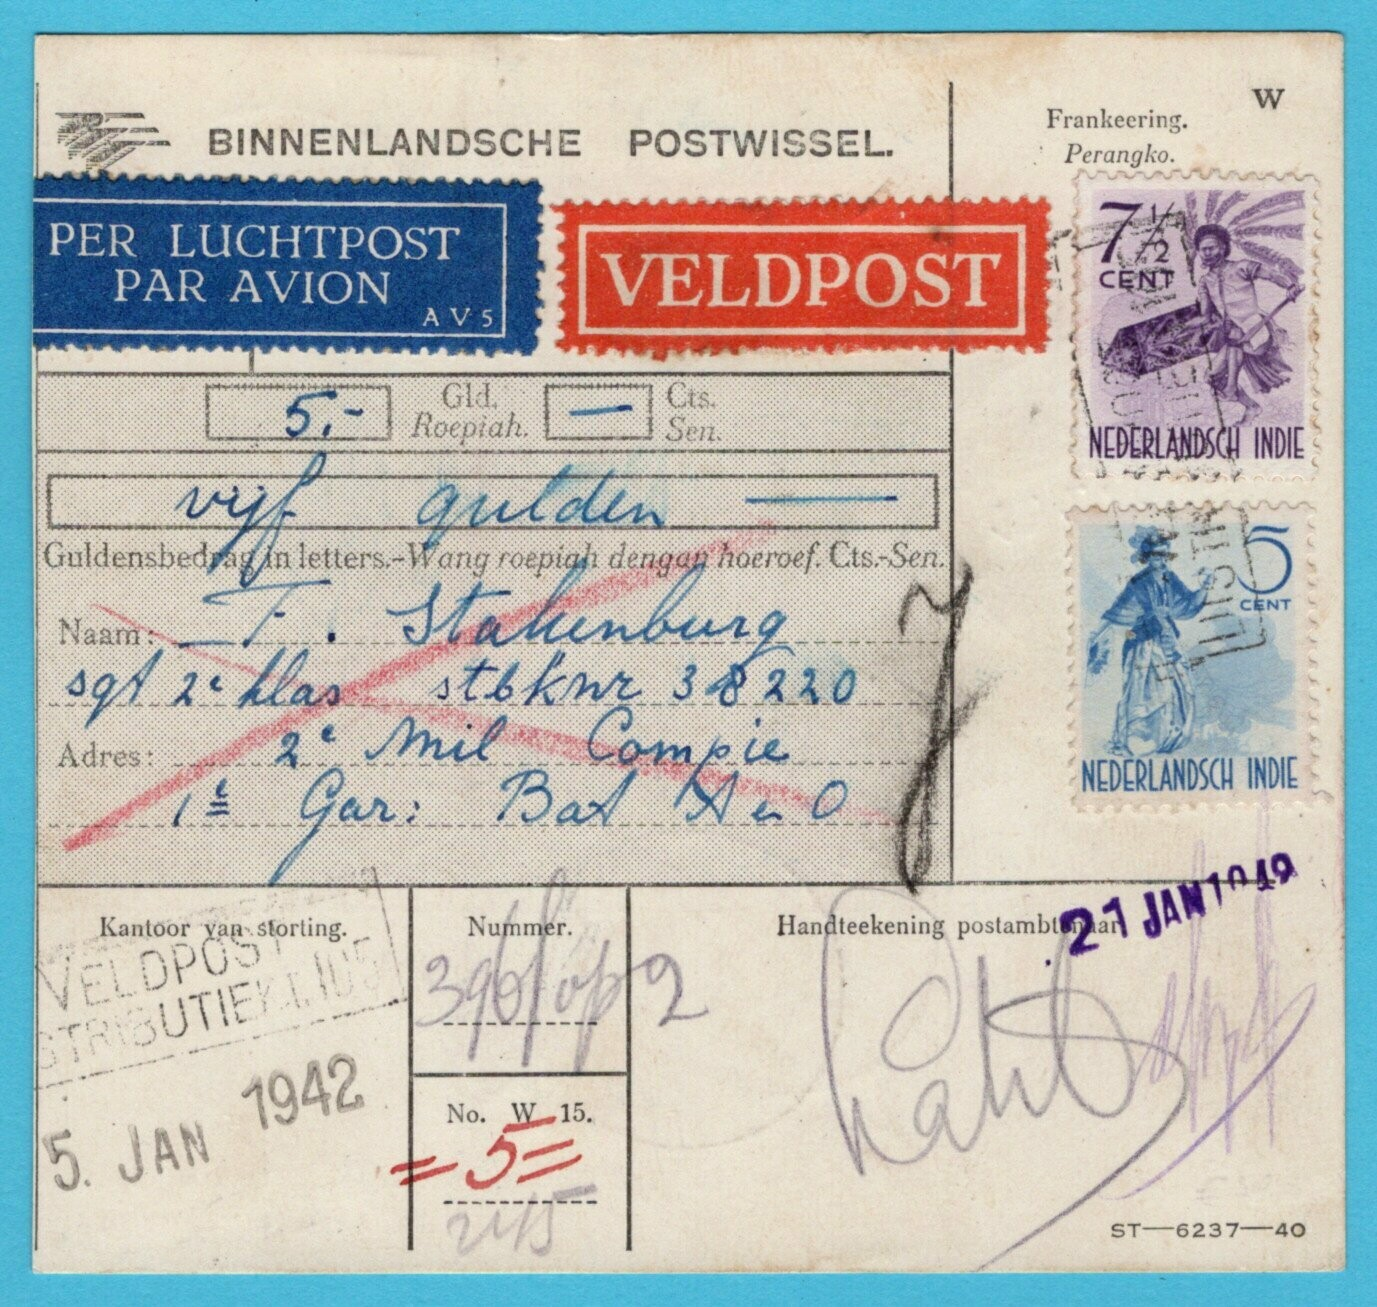 NETHERLANDS EAST INDIES money order 1942 fieldpost 105